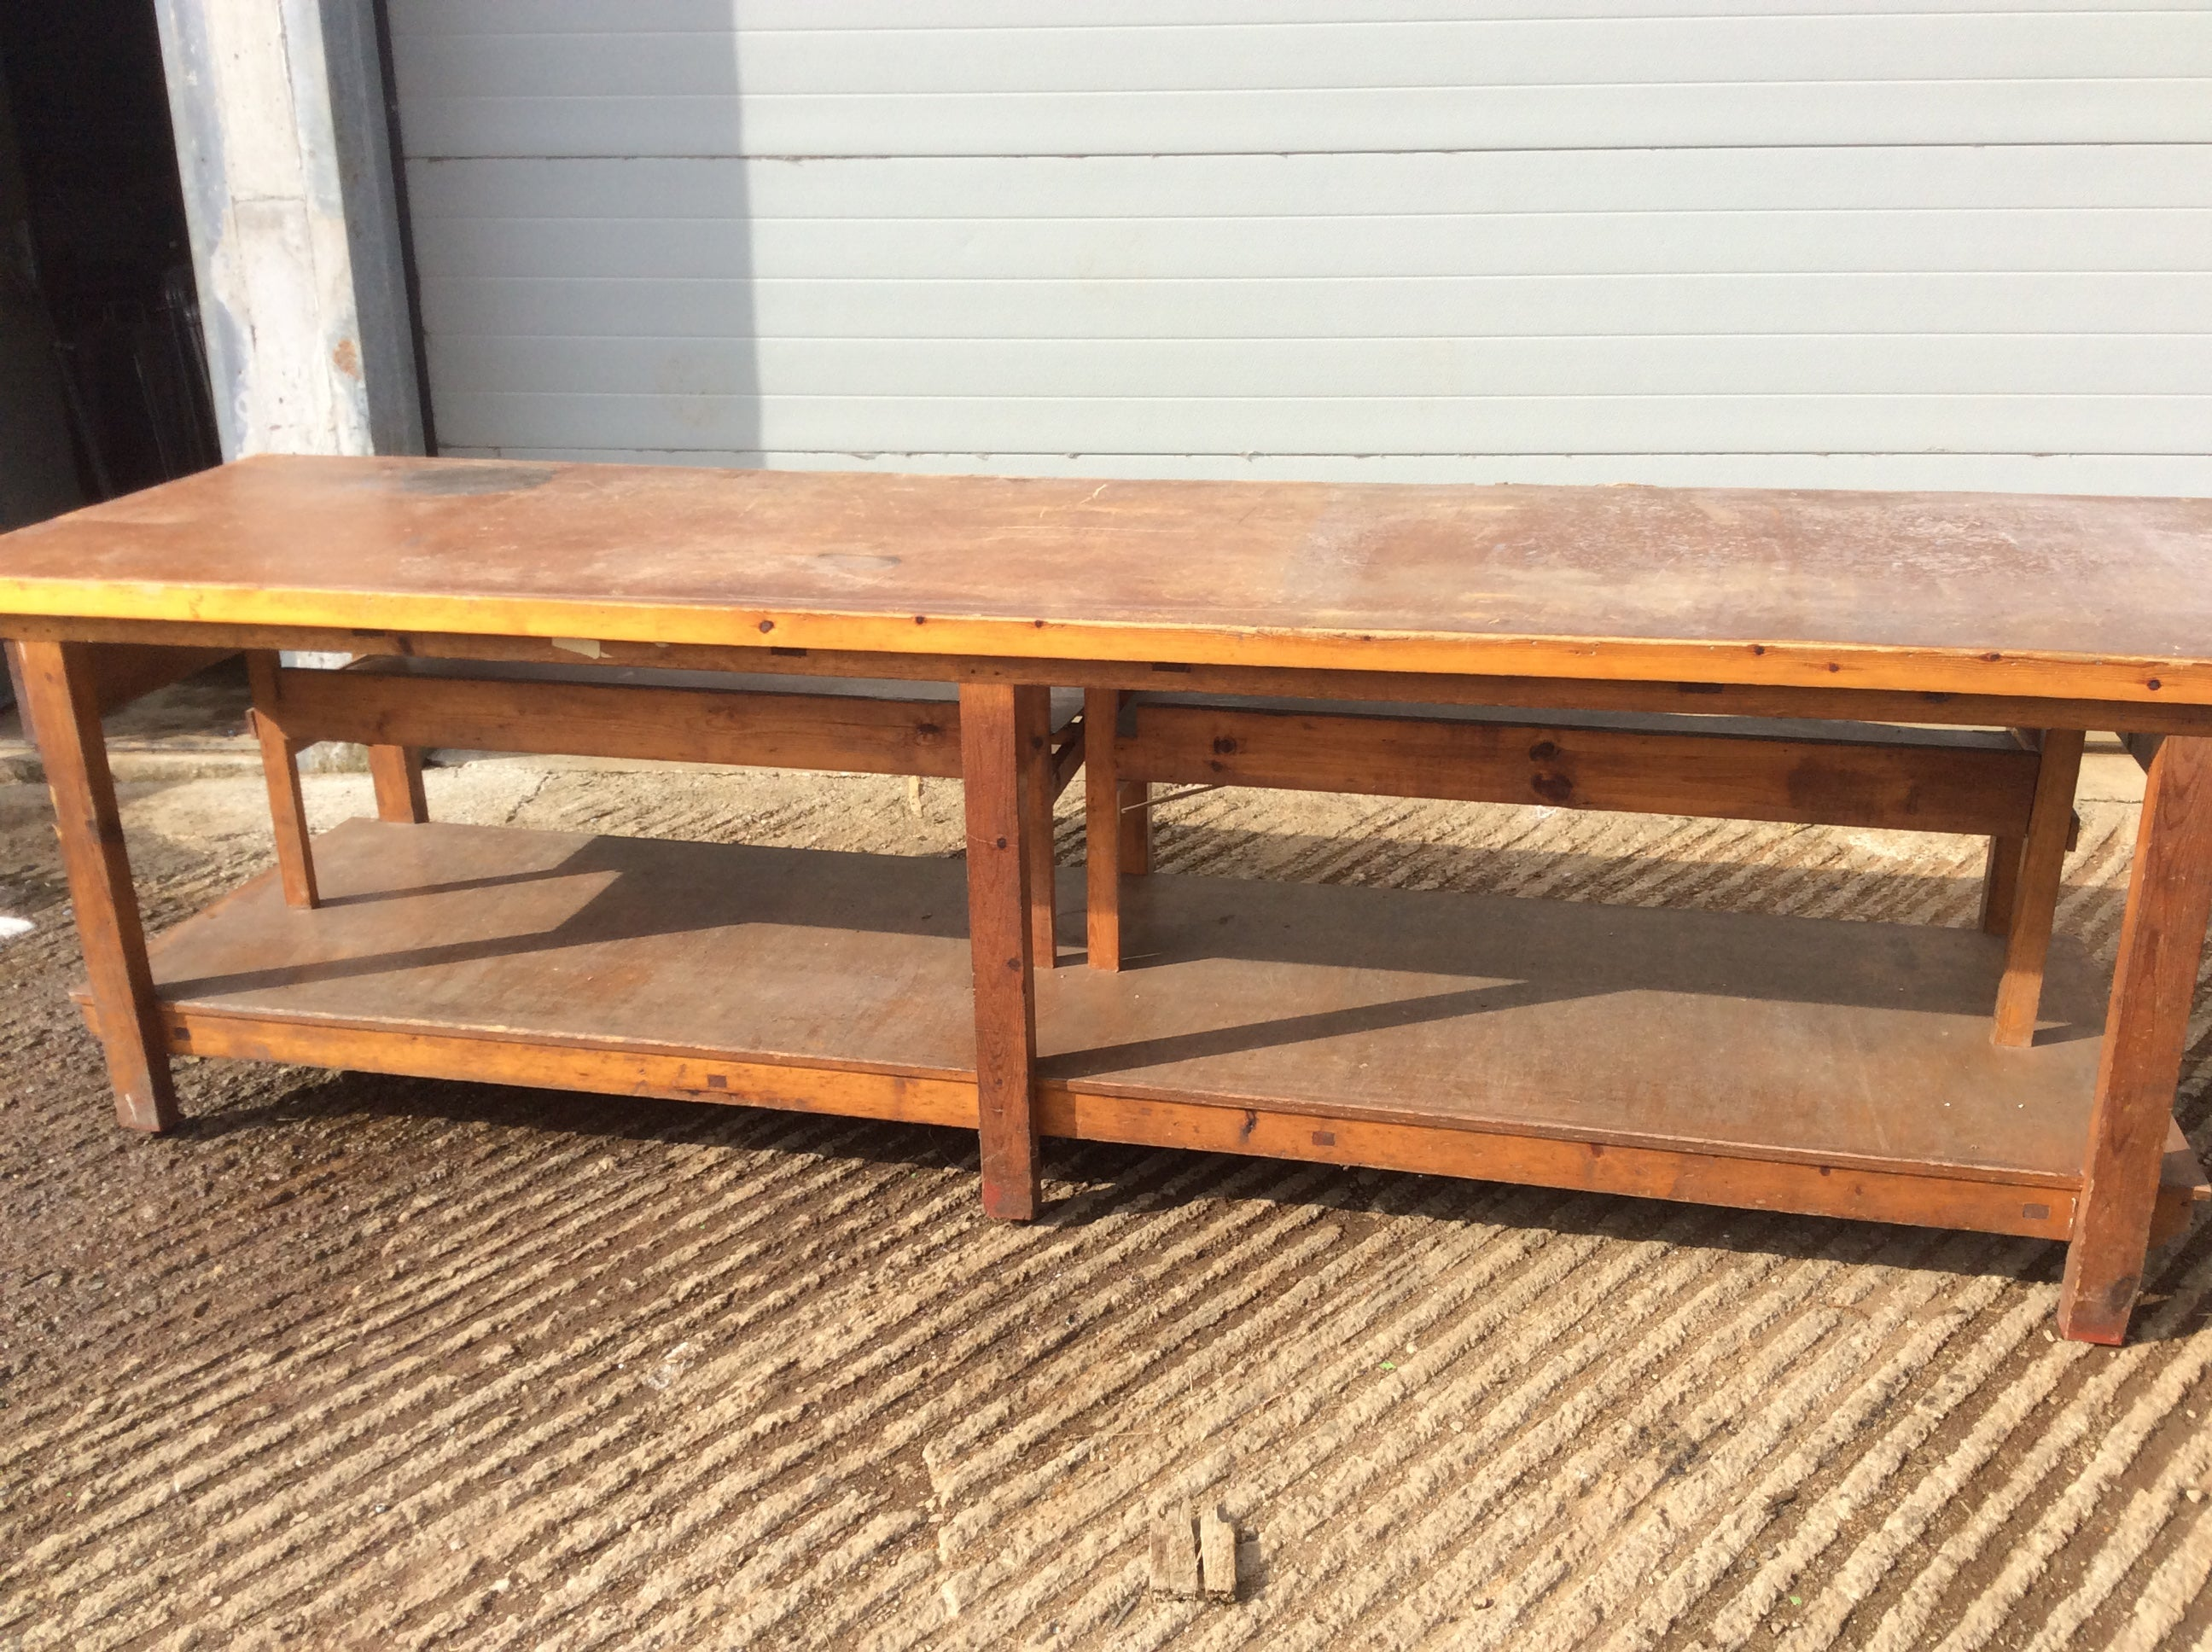 Wooden work / assembly bench